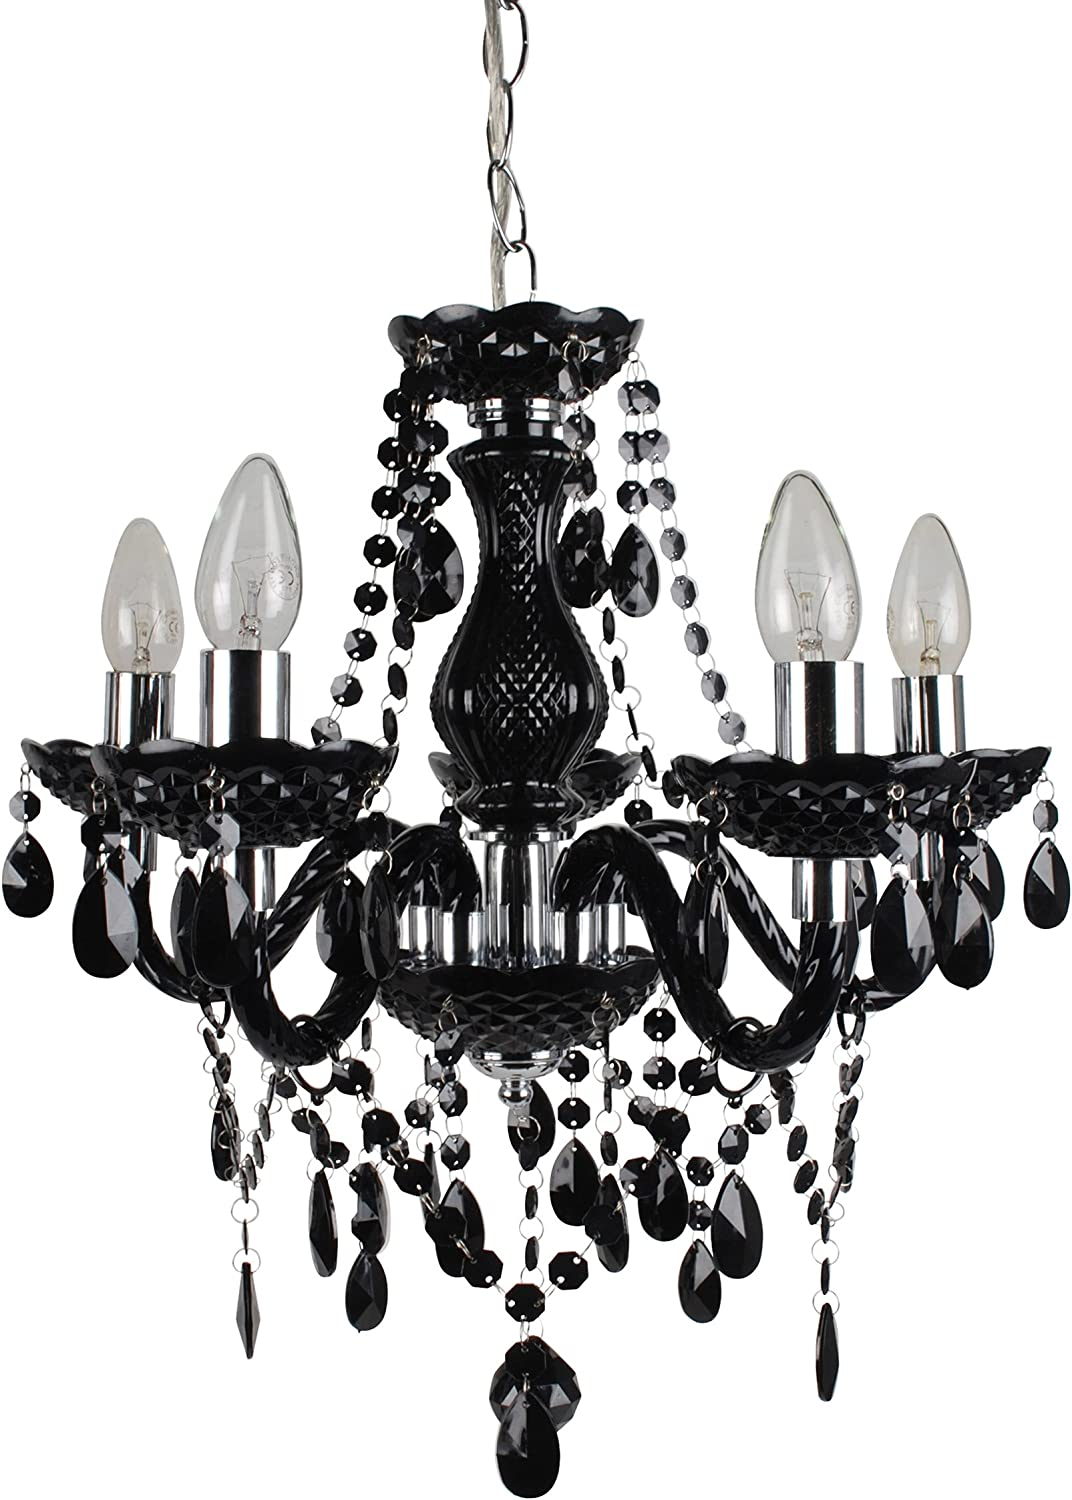 5 Light Ceiling Pendant Chandelier Black and Chrome Marie Therese